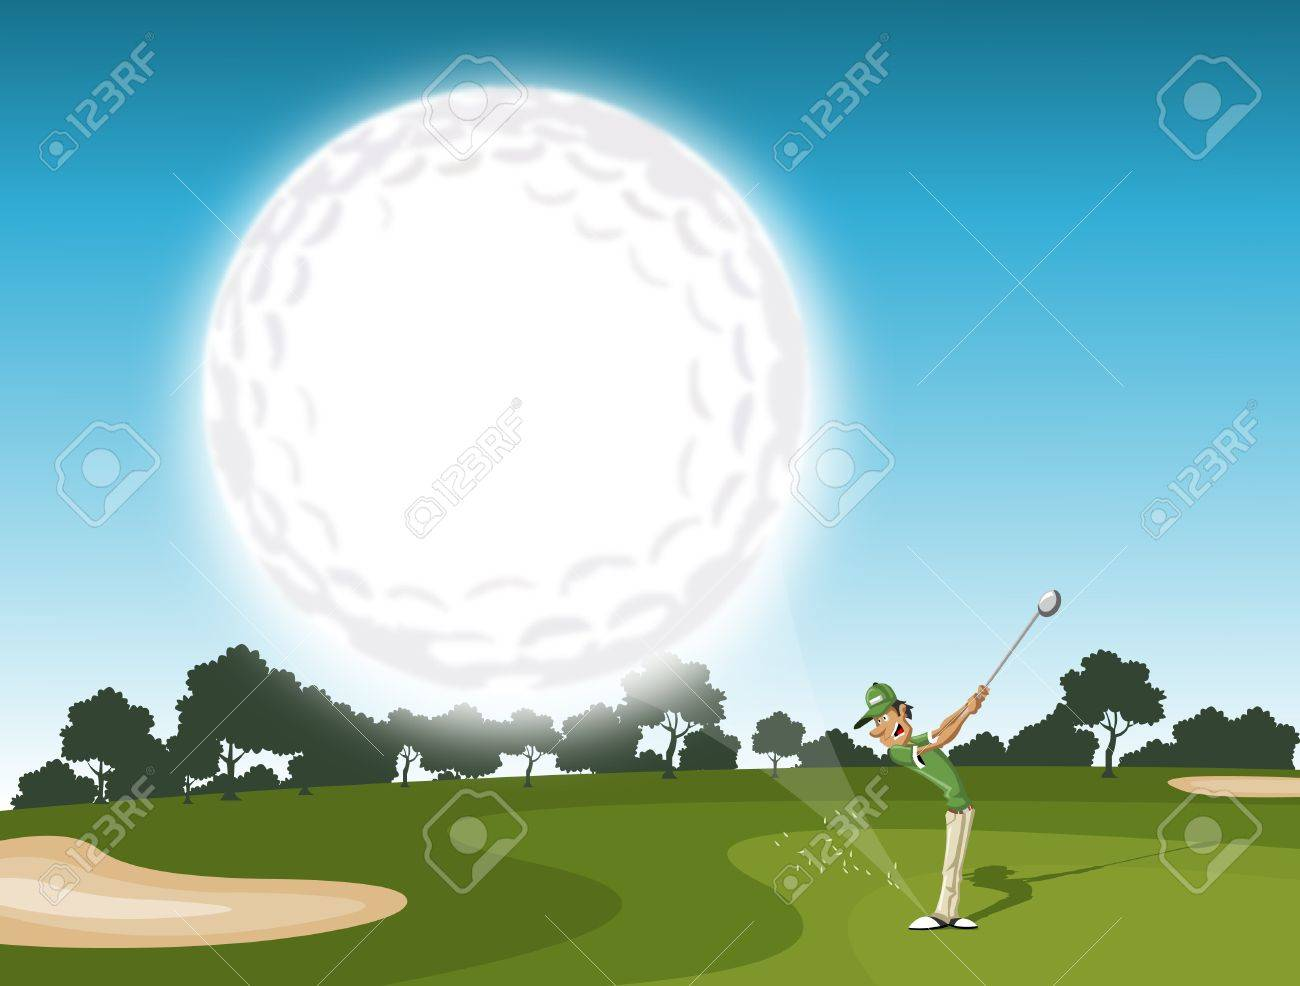 Golf ball coming  golfer swinging after hitting golf ball  EPS 10 and transparency Stock Vector - 16552355